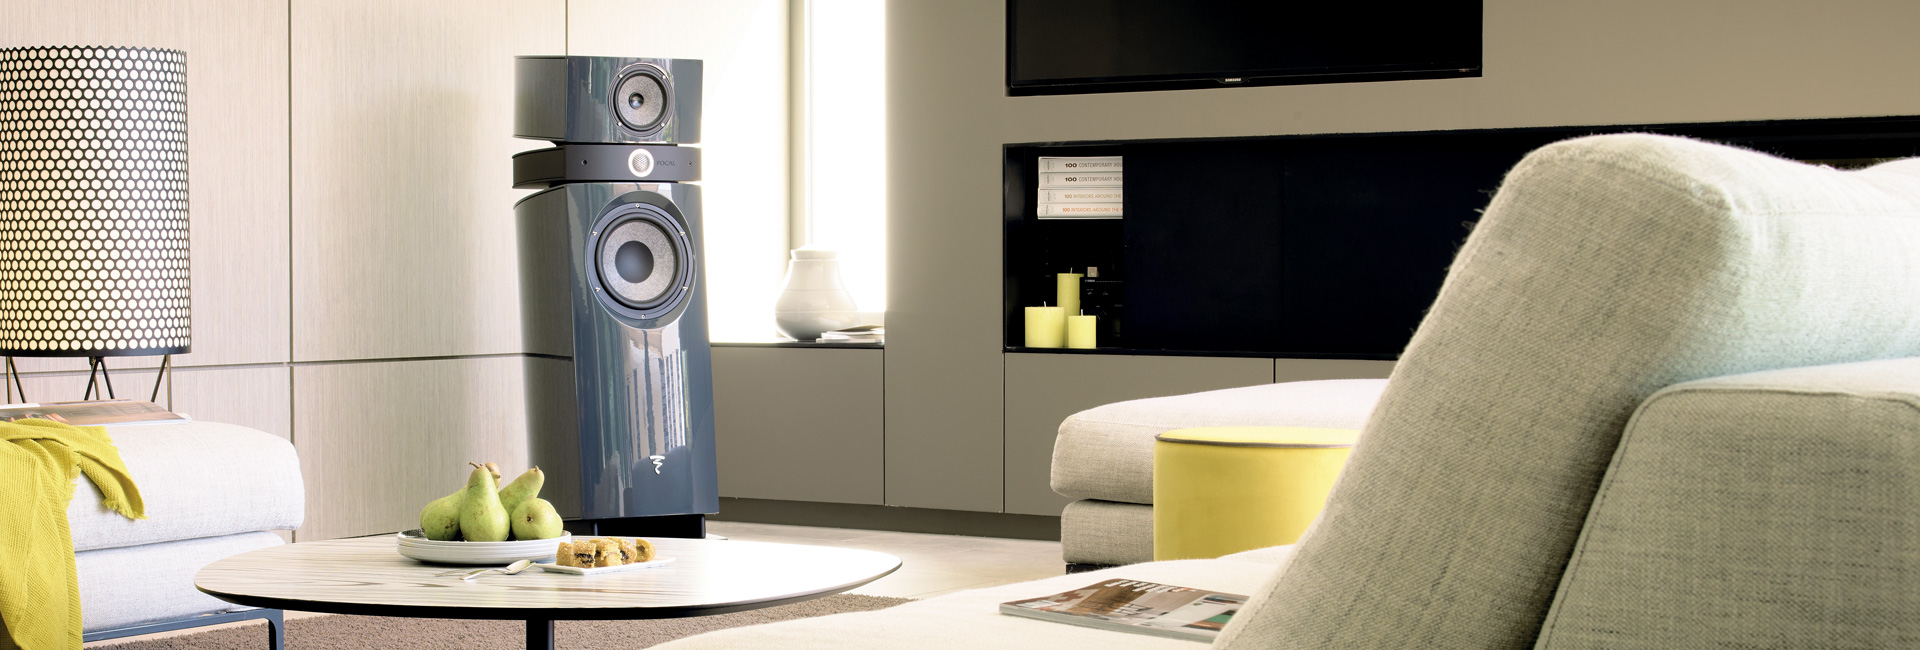 focal-utopia-iii-evo-upgraded-speakers